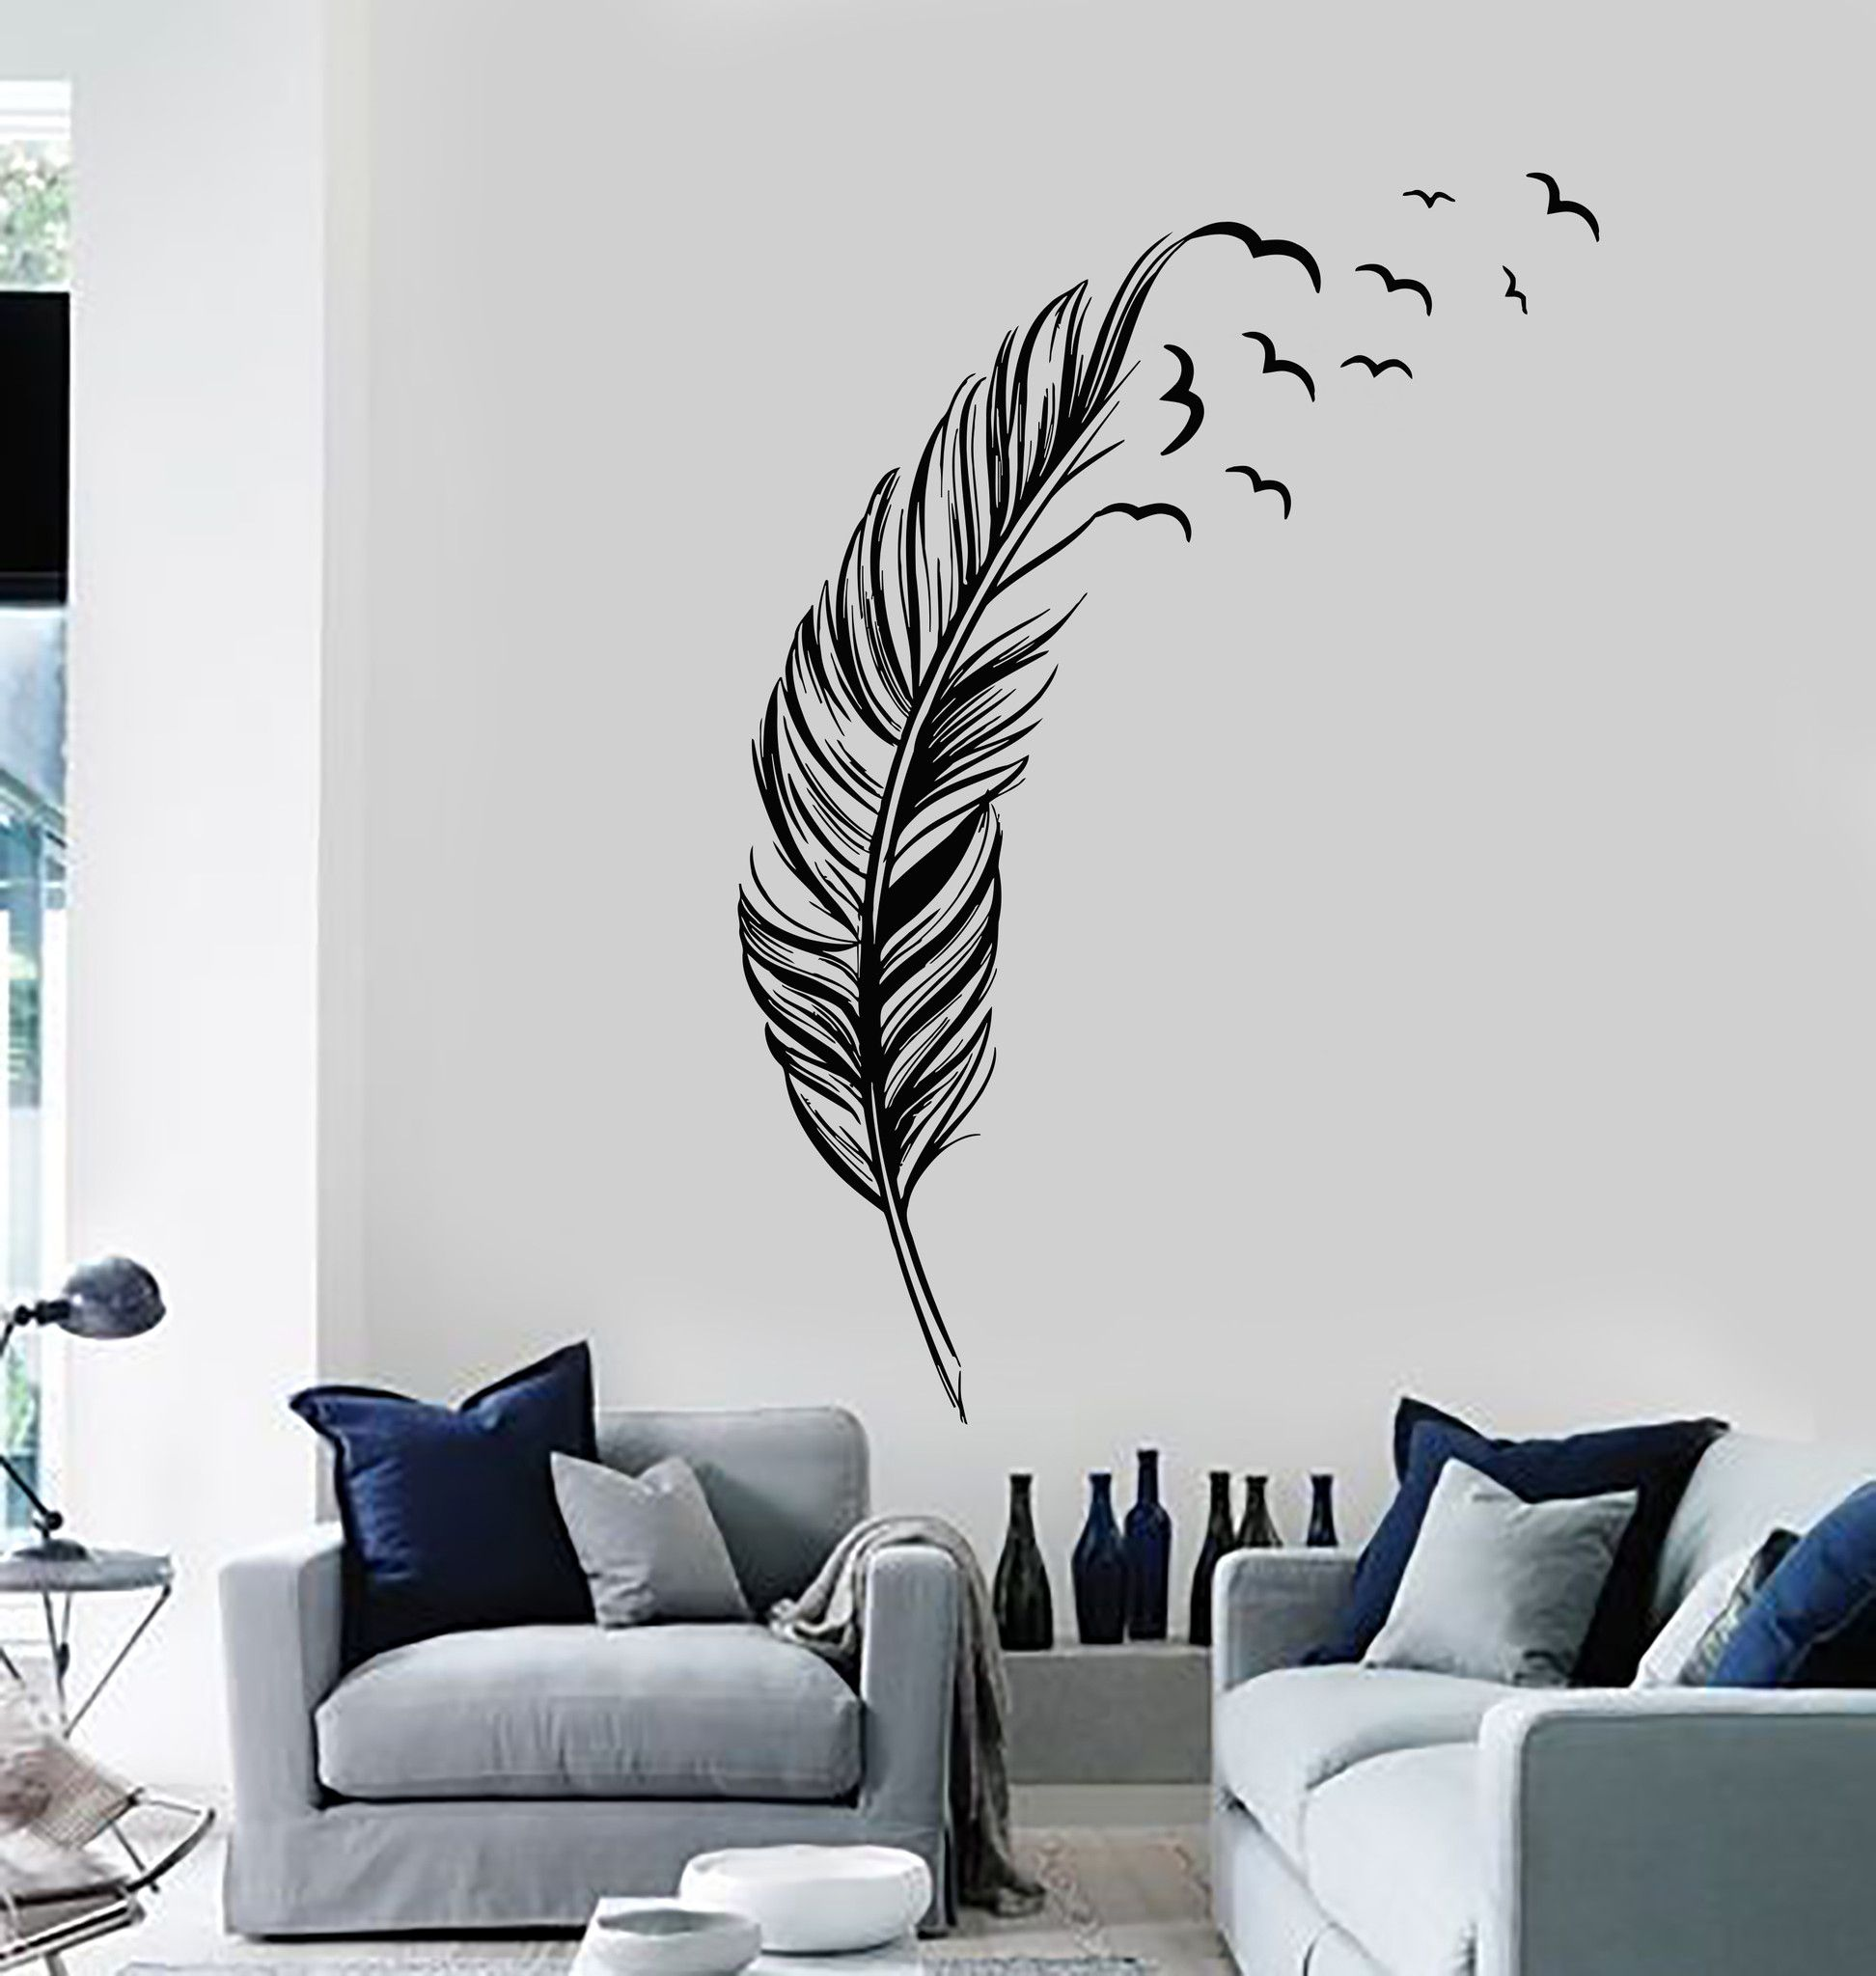 Best Vinyl Wall Decal Feather Birds Bedroom Home Decoration 640 x 480